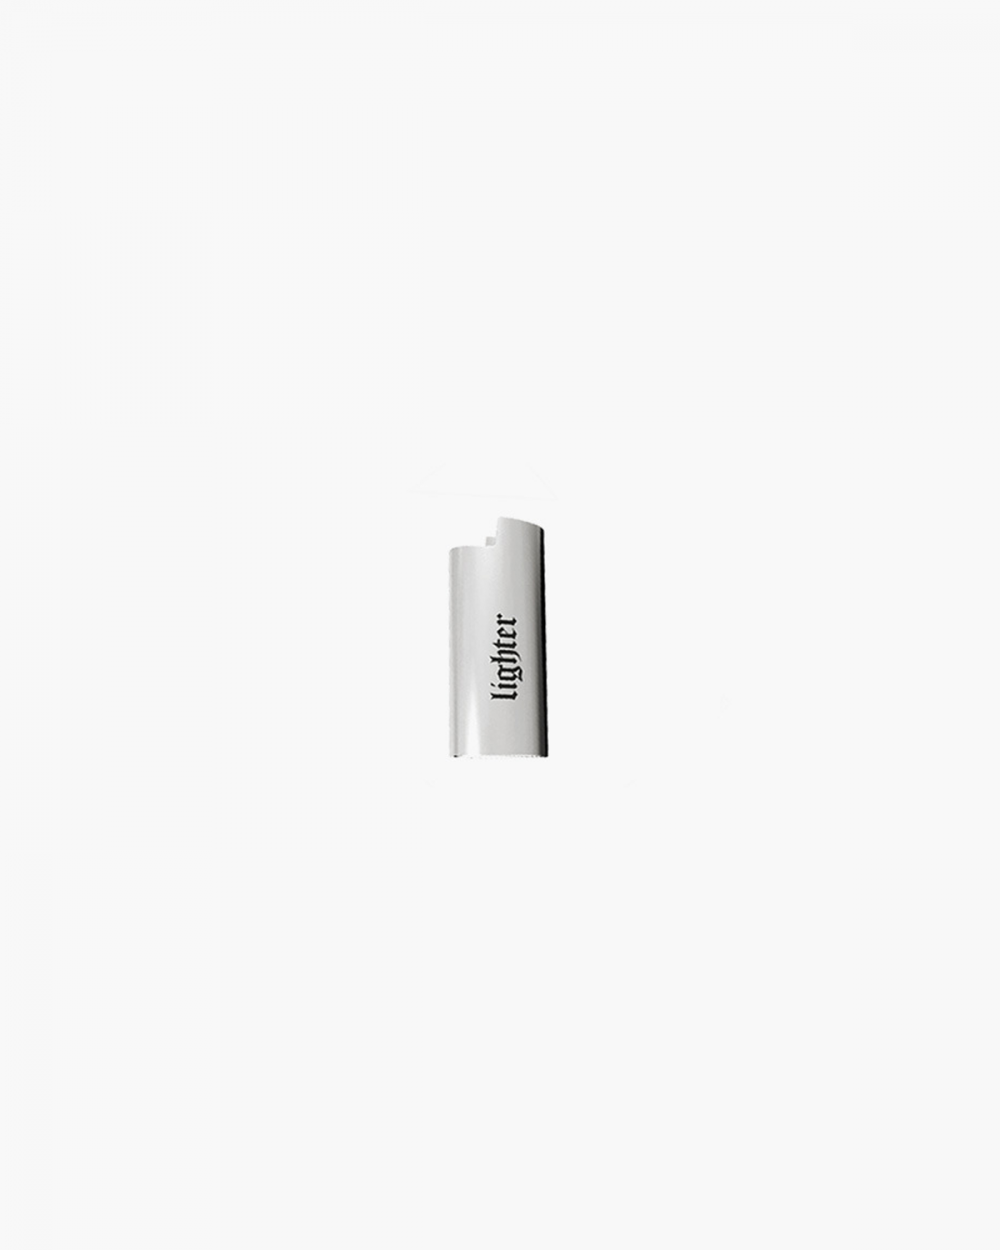 MYNOVE25 SMALL BIC LIGHTER CASE NOVE25